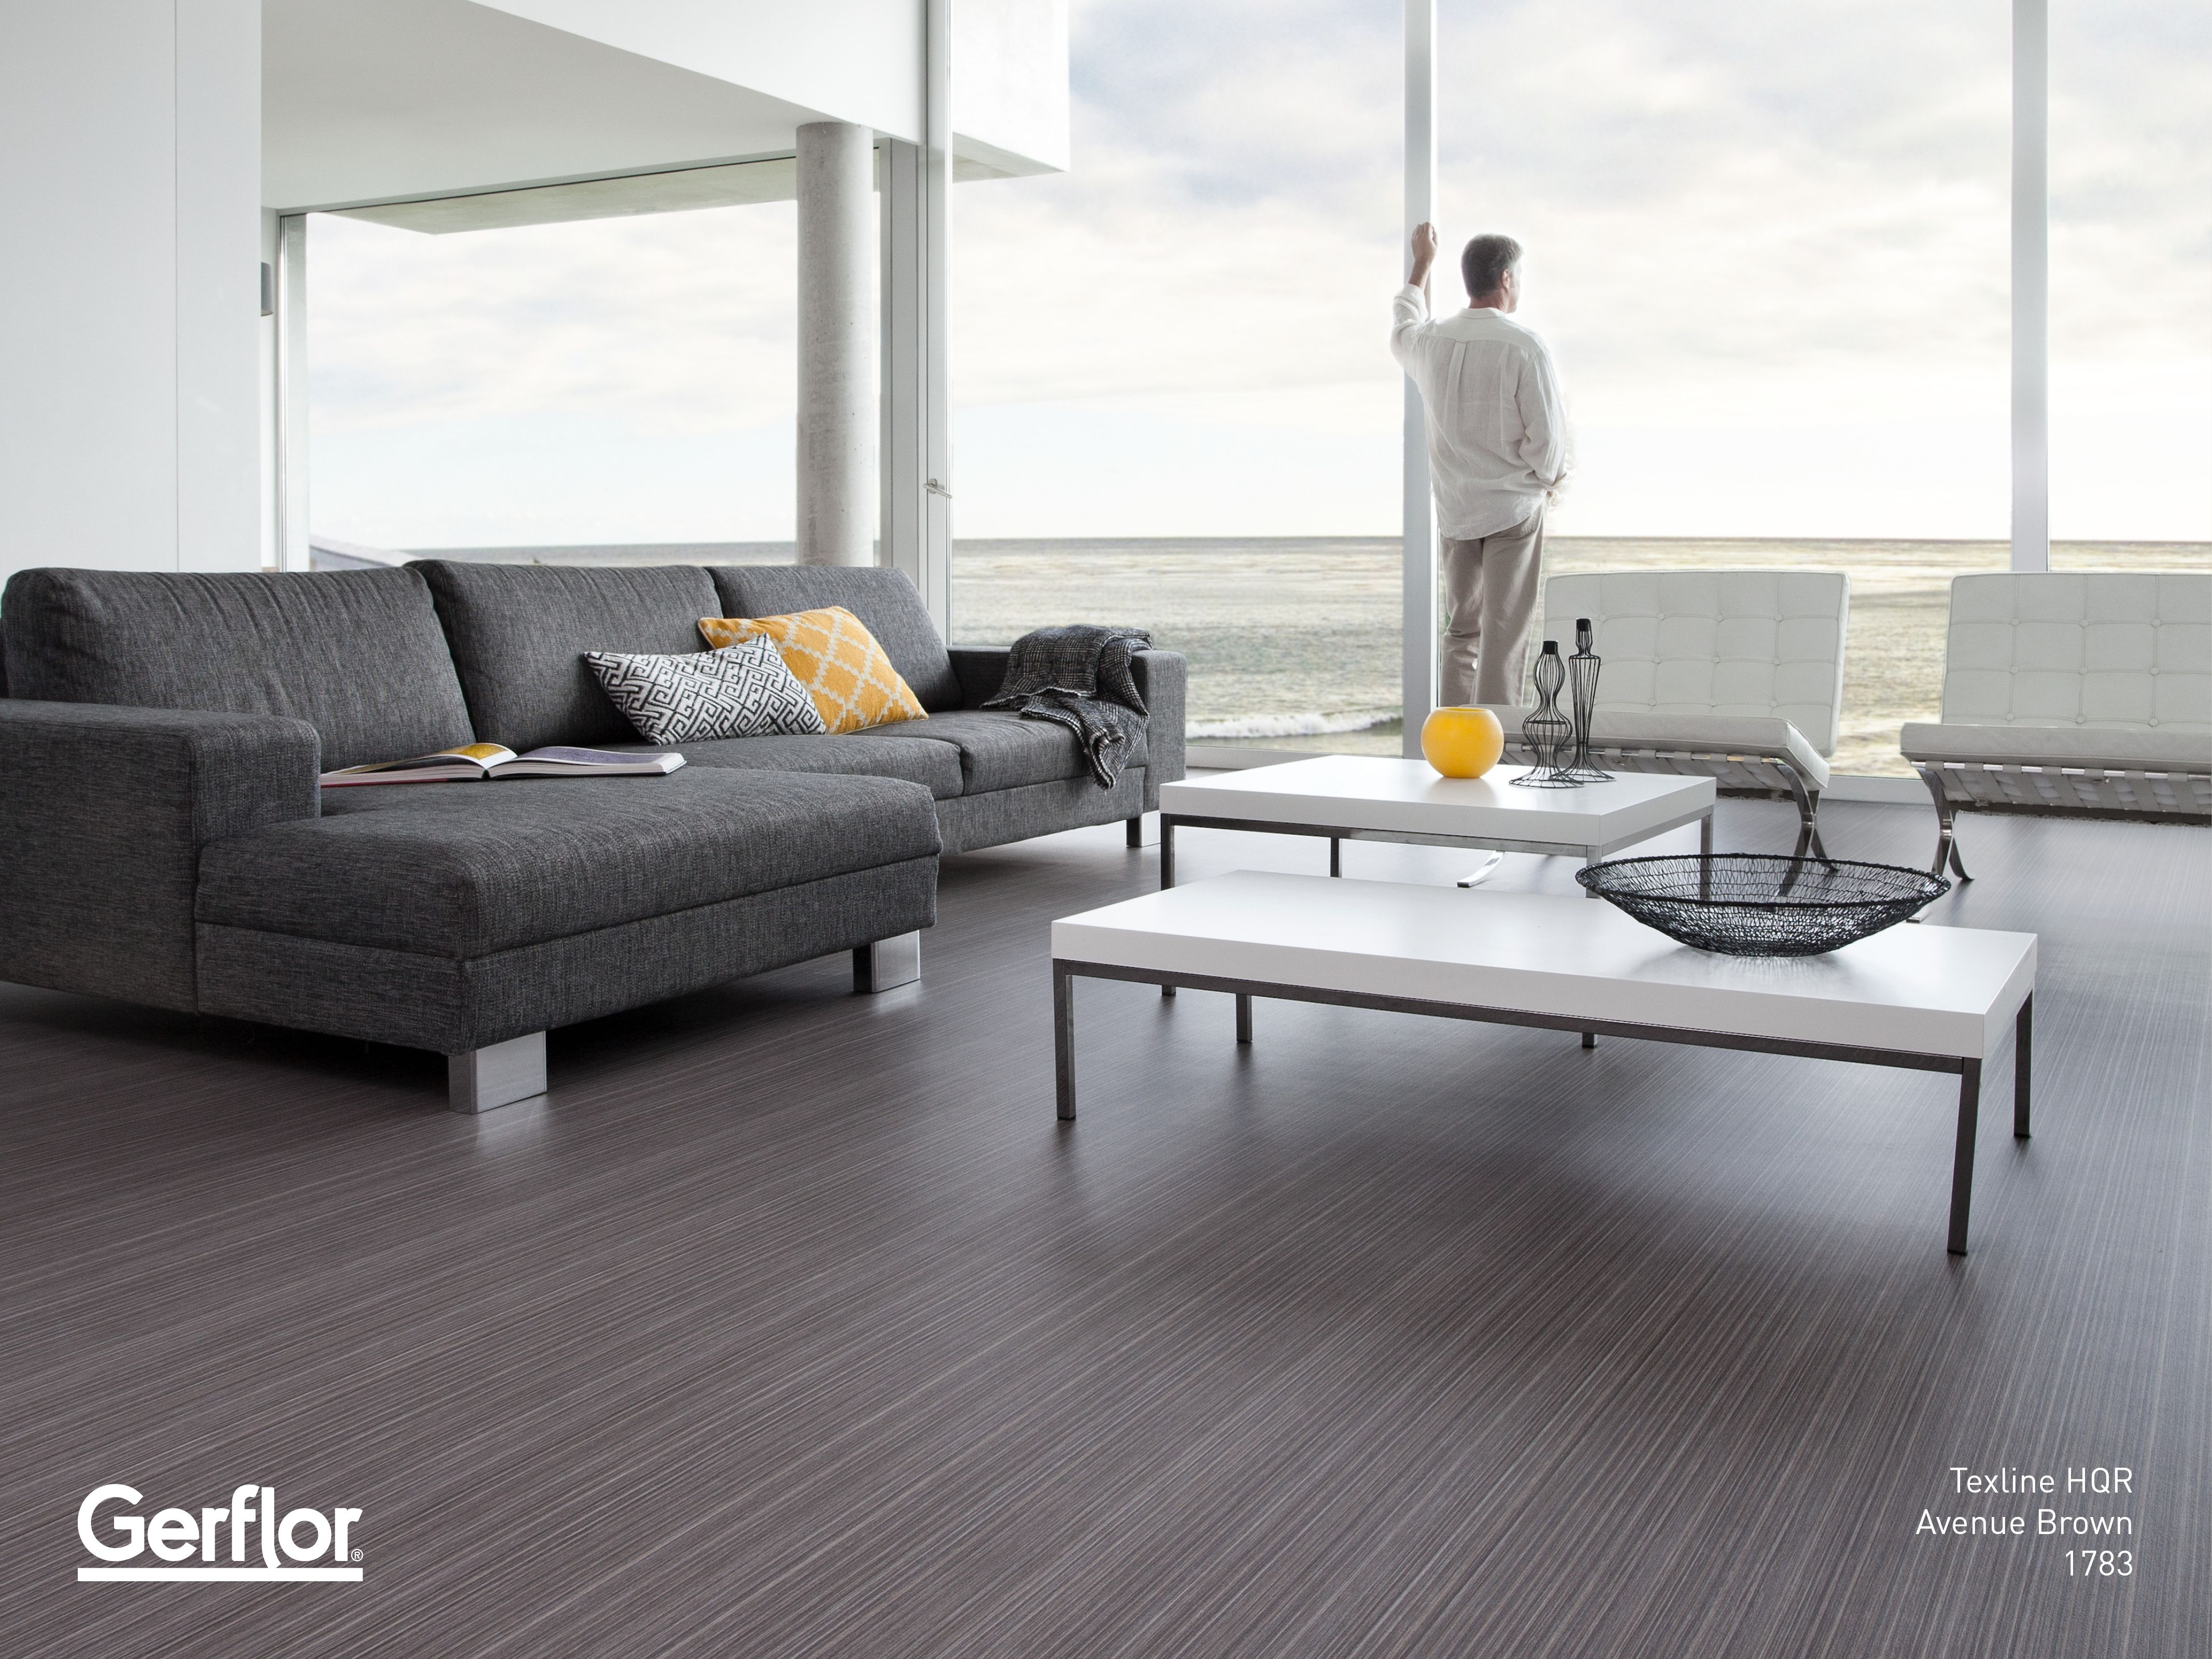 Gerflor S New Range Of Texline Hqr Features Graphic Lines